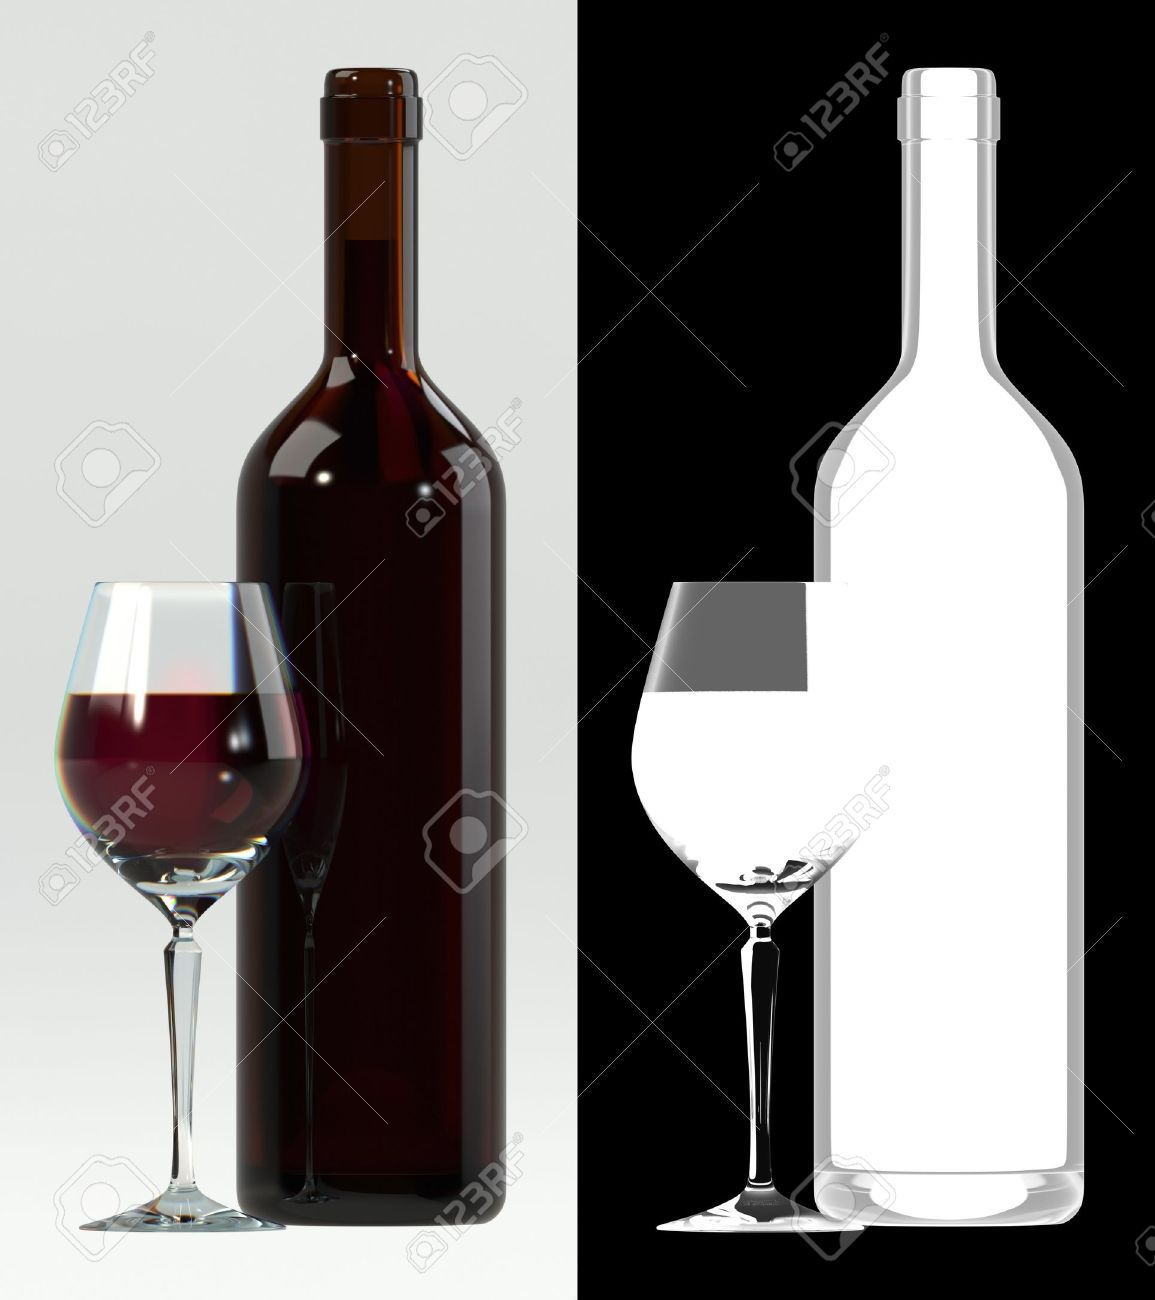 Glass of red wine with bottle. Alpha transparency on right for easily extraction and background replacement. - 11067550